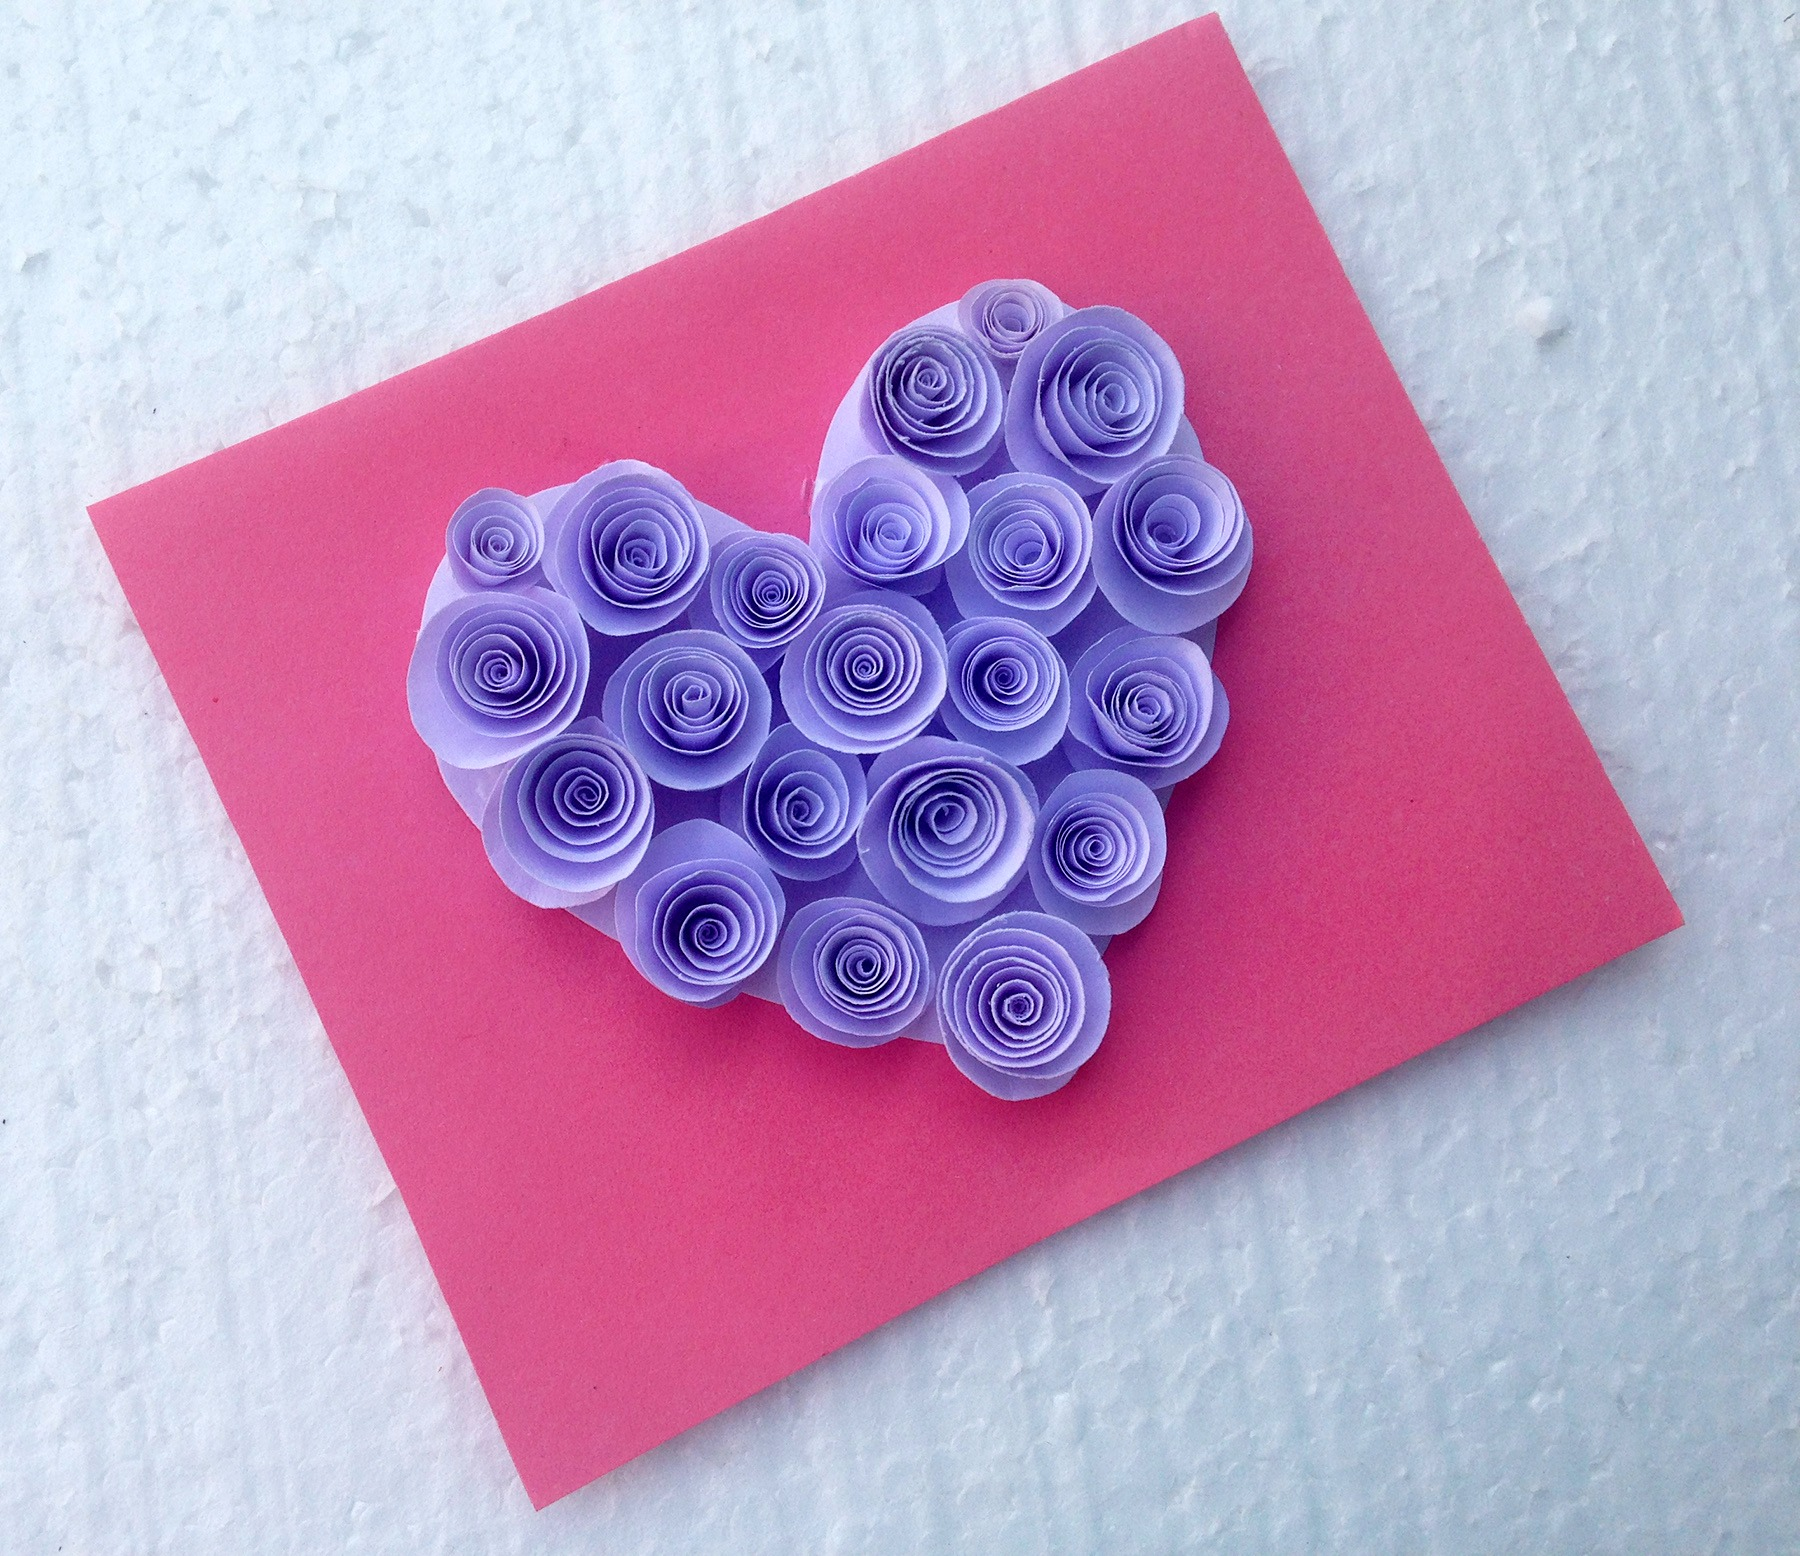 Valentines-day-card-diy-ideas-paper-craft